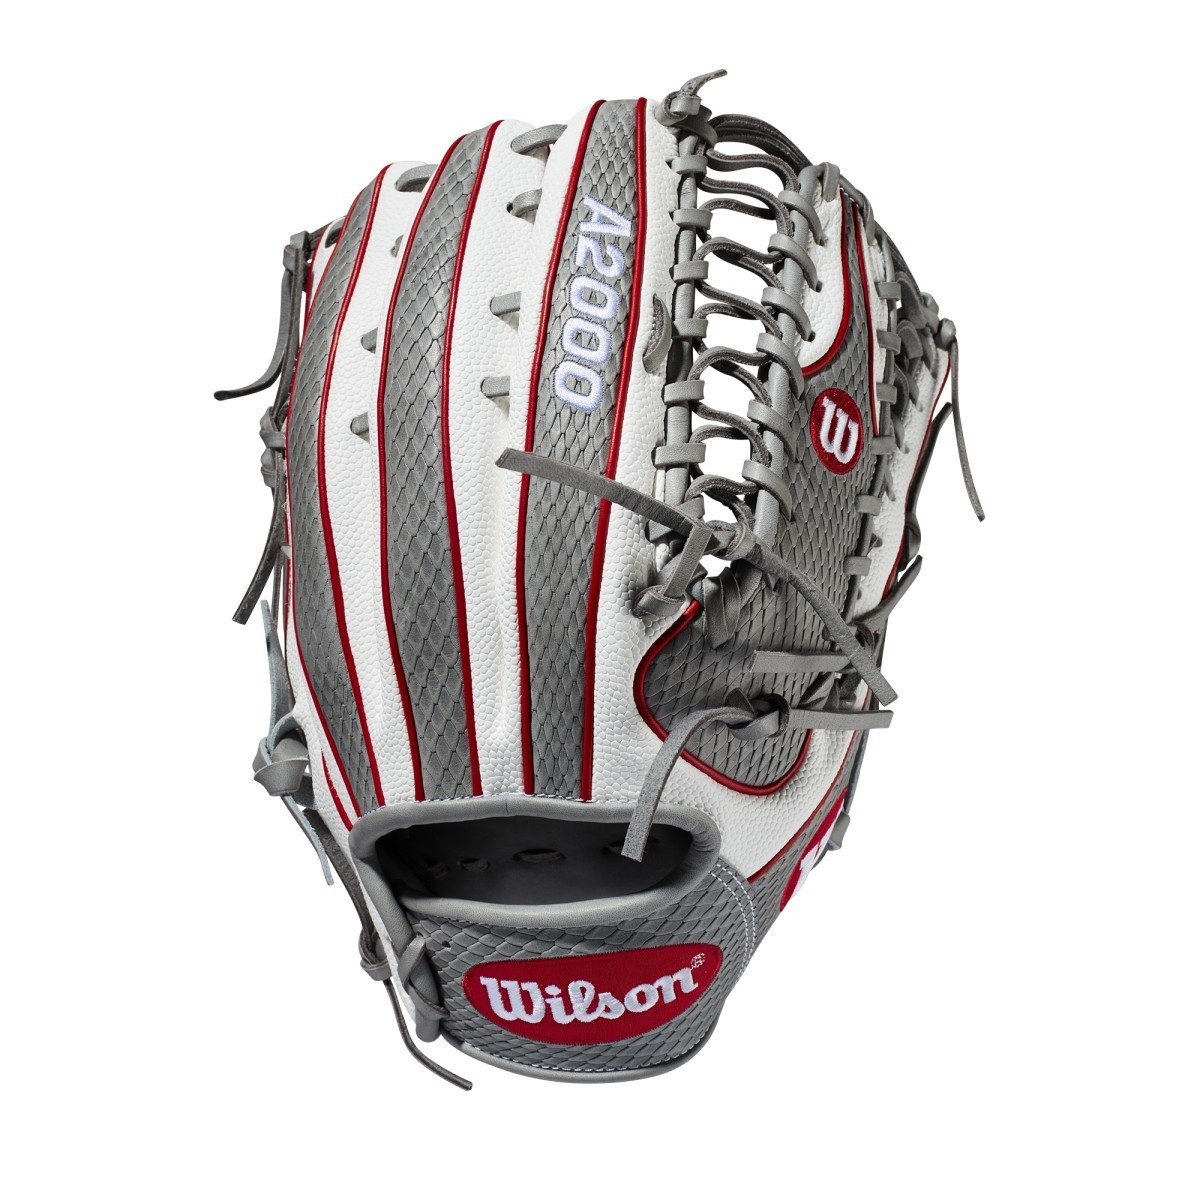 CUSTOM A2000 OT6SS WITH SNAKESKIN LEATHER BASEBALL GLOVE - MARCH 2019